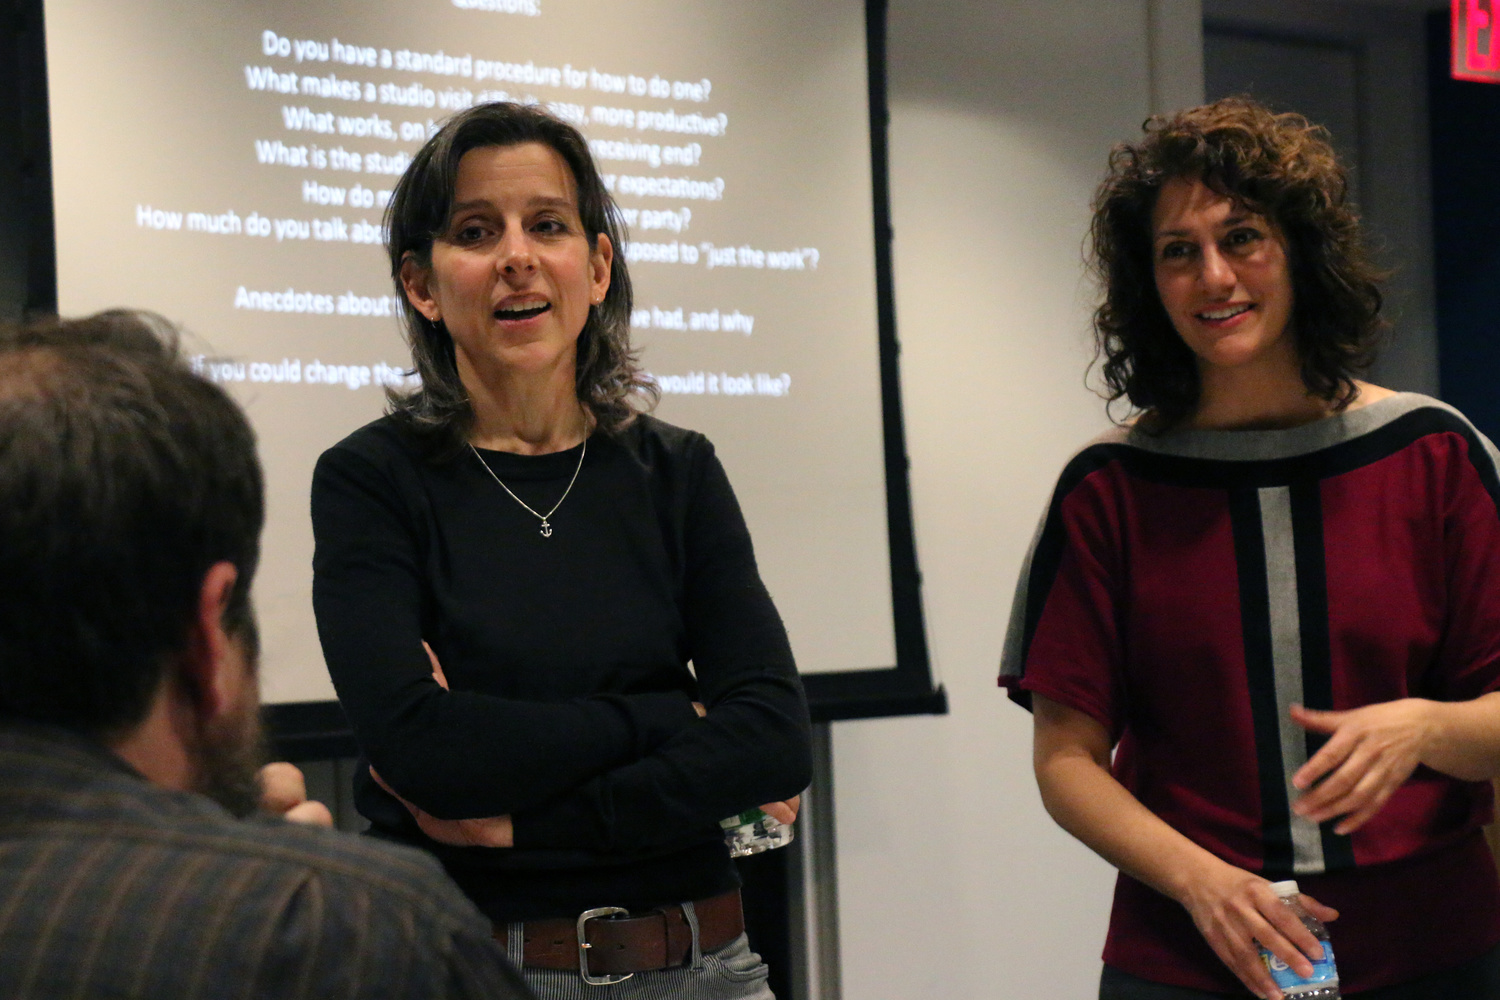 Art and Practice: Nina Katchadourian and Regine Basha, April 28, 2016, The Museum of Modern Art. Photo: Manuel Molina Martagon. © 2016 The Museum of Modern Art, New York